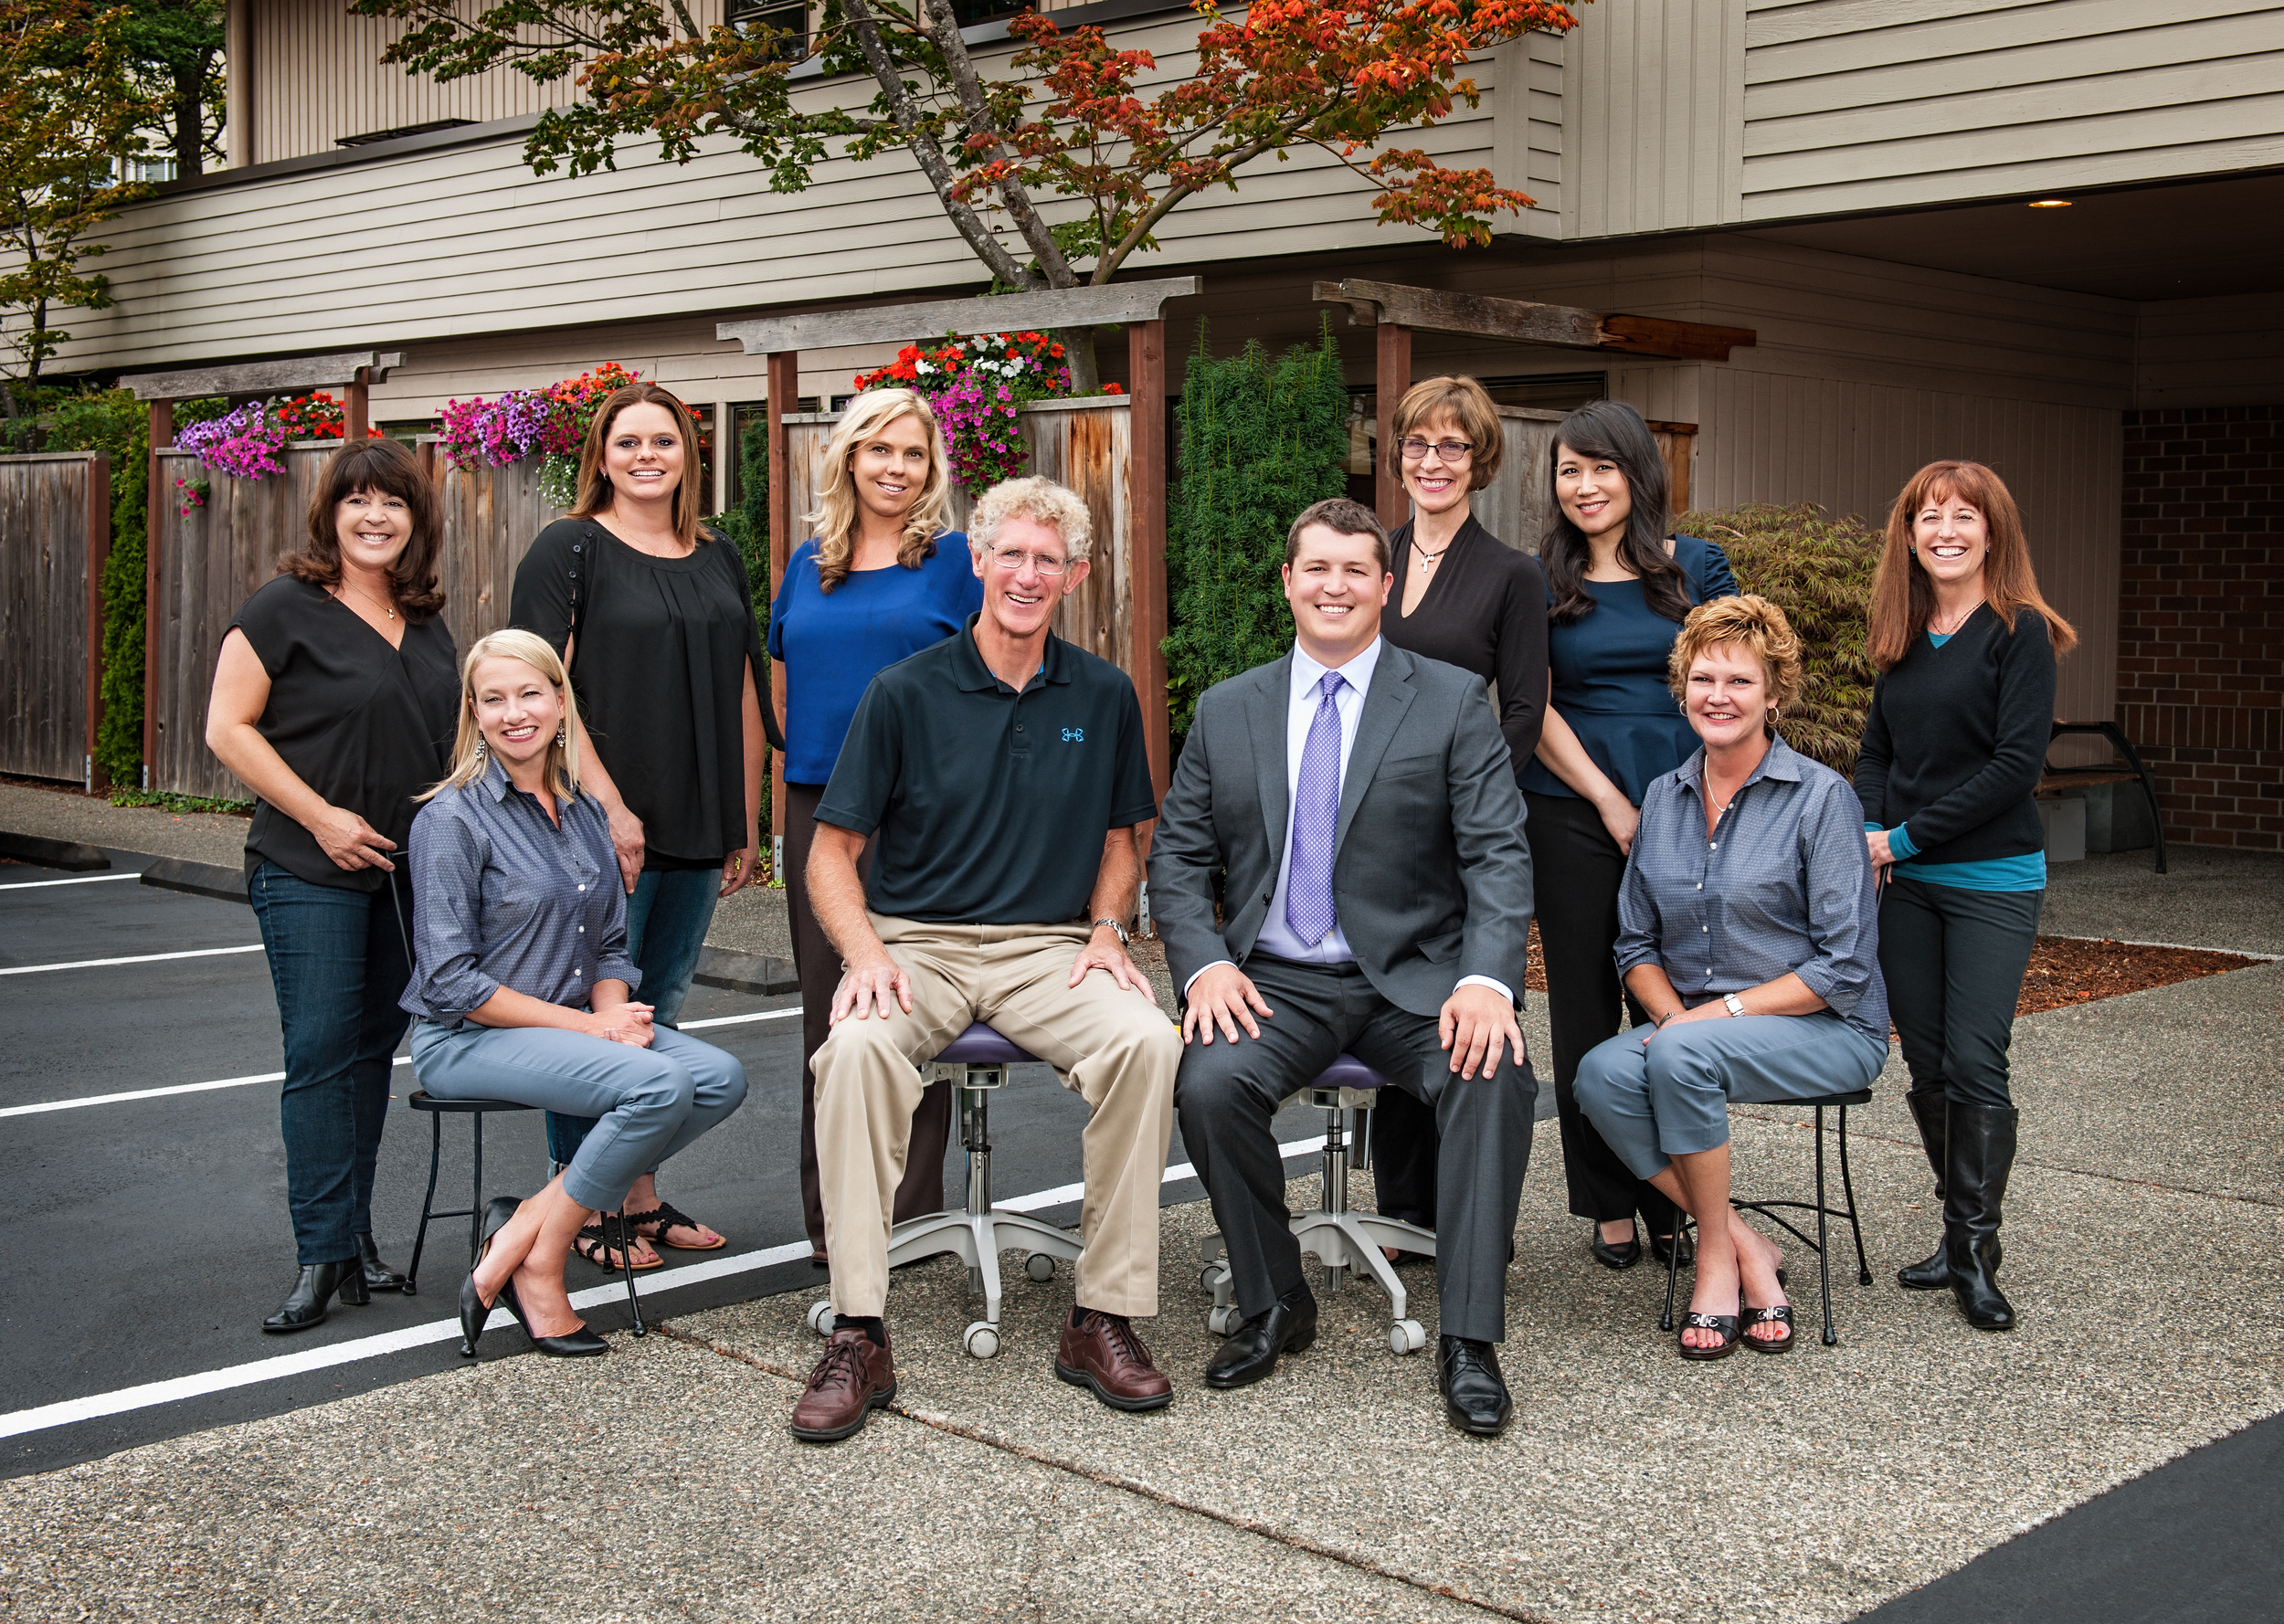 Meet the caring, compassionate team at Gilbreath Dental in Burien, WA.